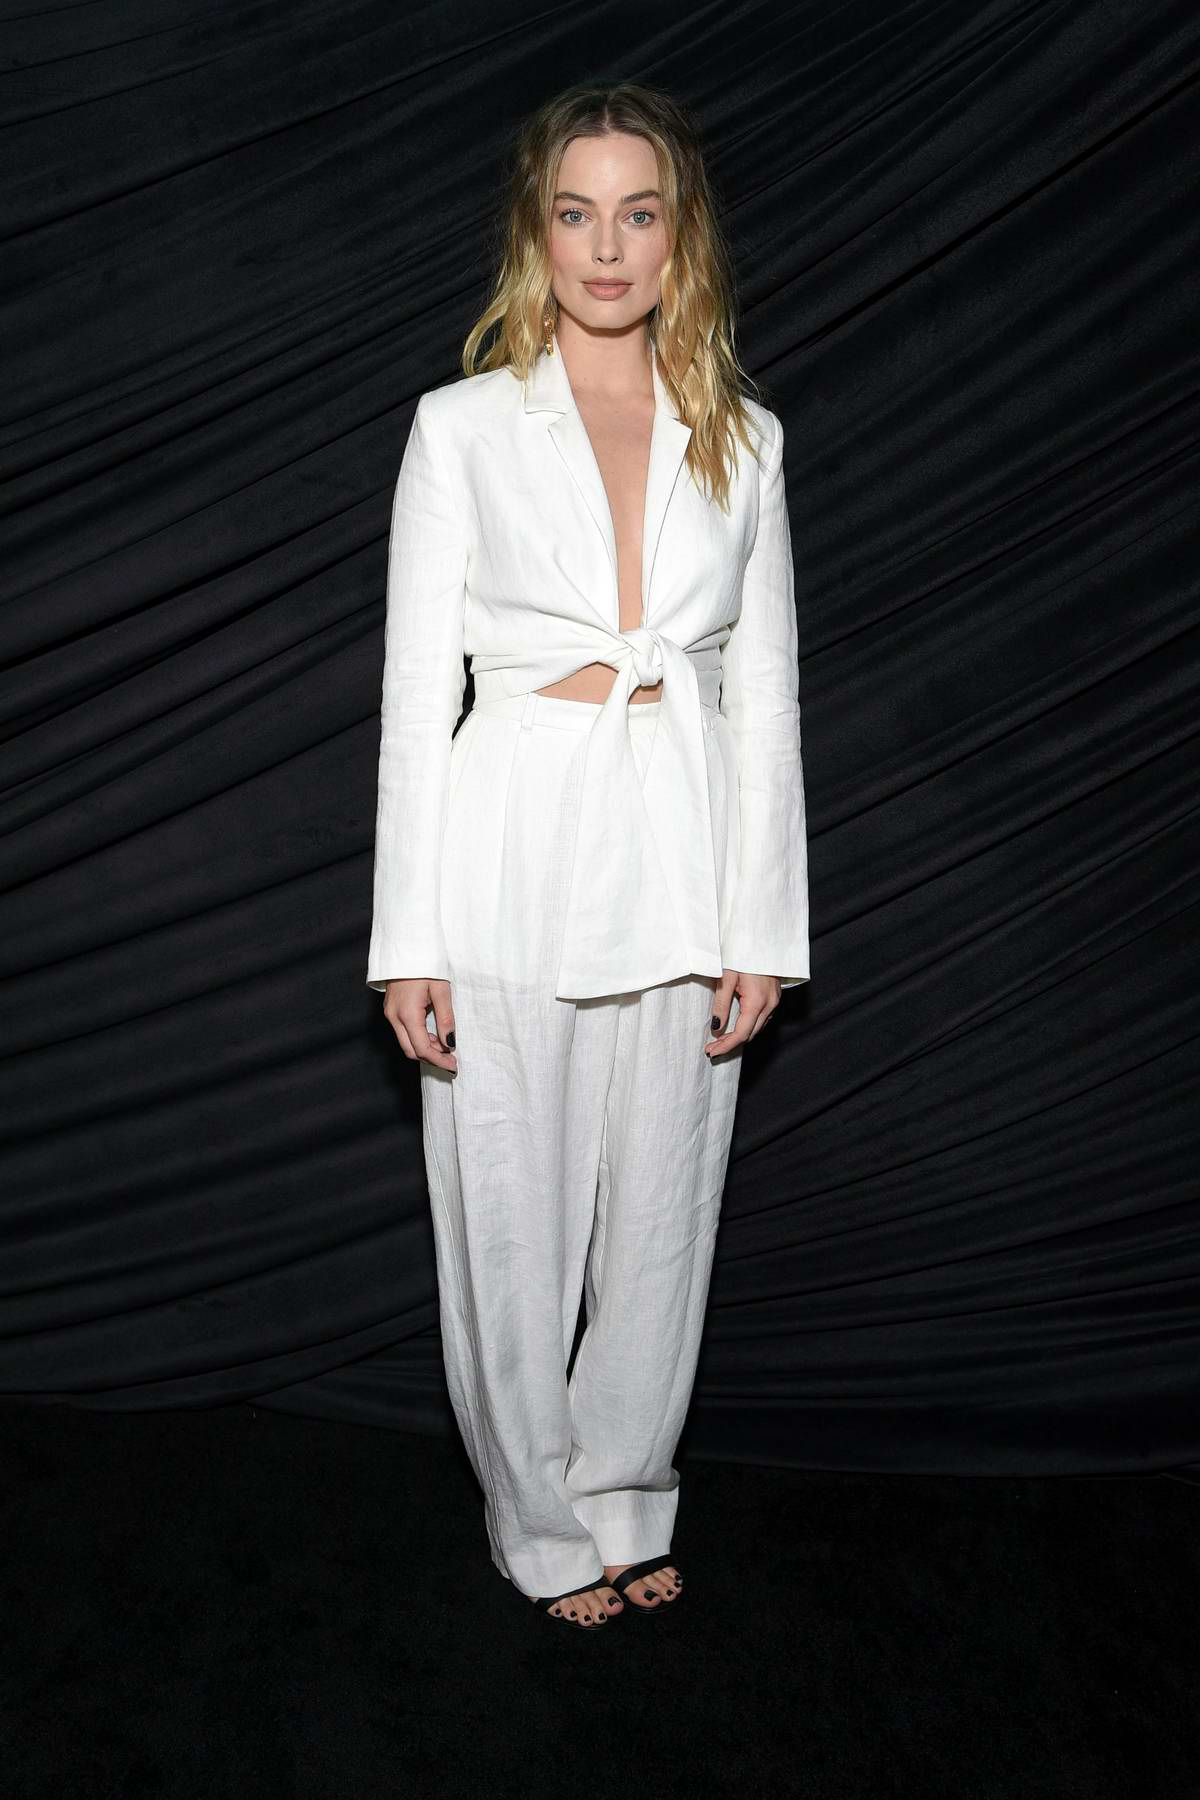 Margot Robbie attends a special screening of 'Bombshell' in West Hollywood, Los Angeles